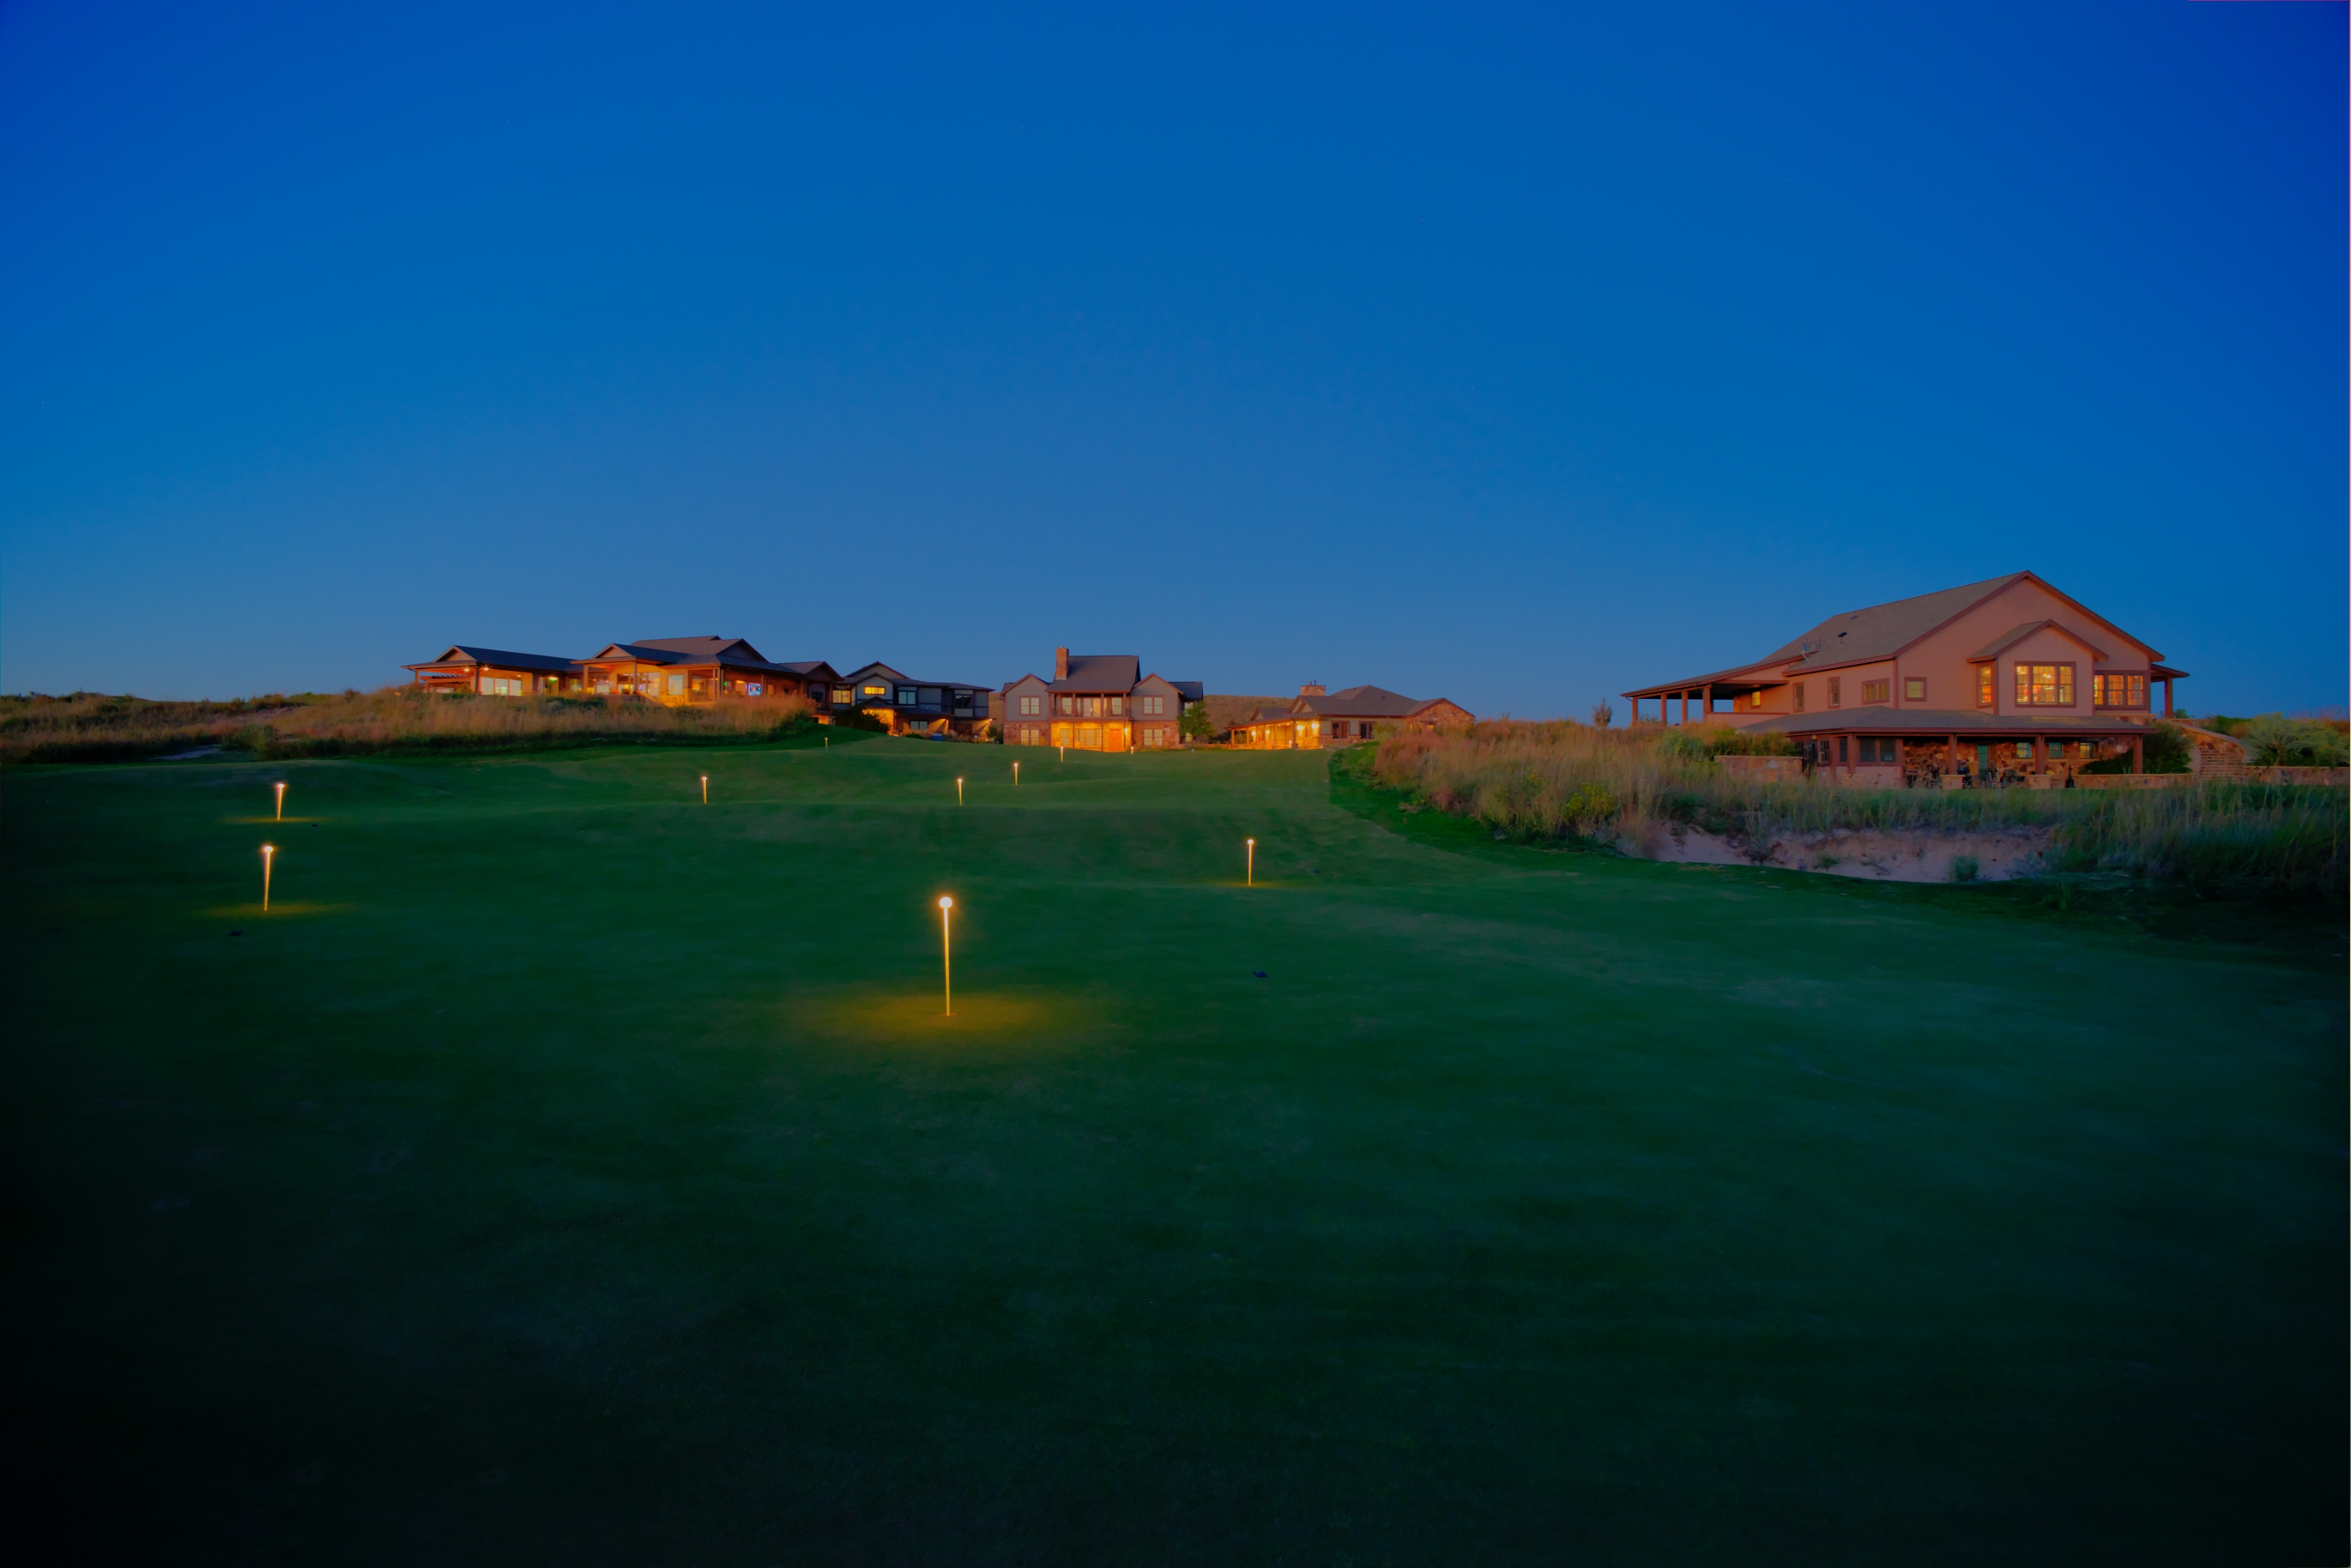 ballyneal-the-commons-lastpic